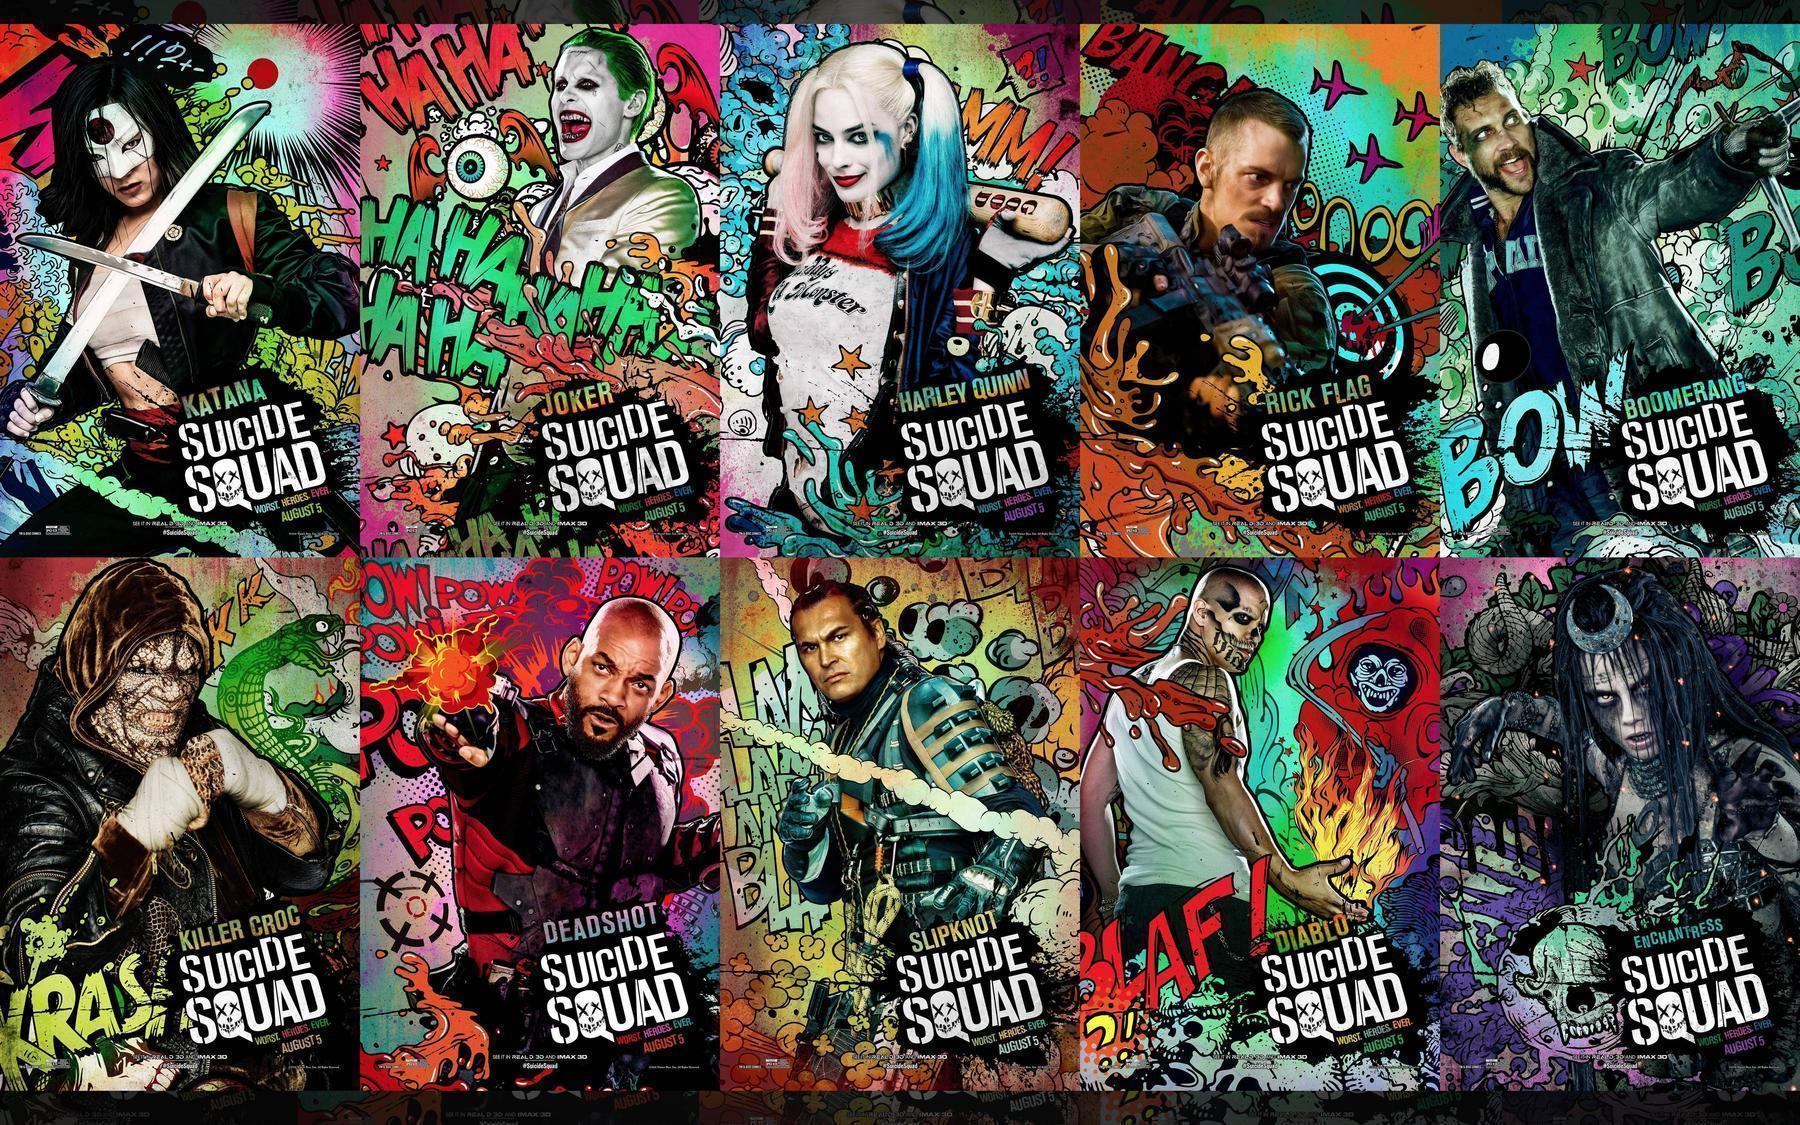 Suicide Squad Wallpapers Ultra HD